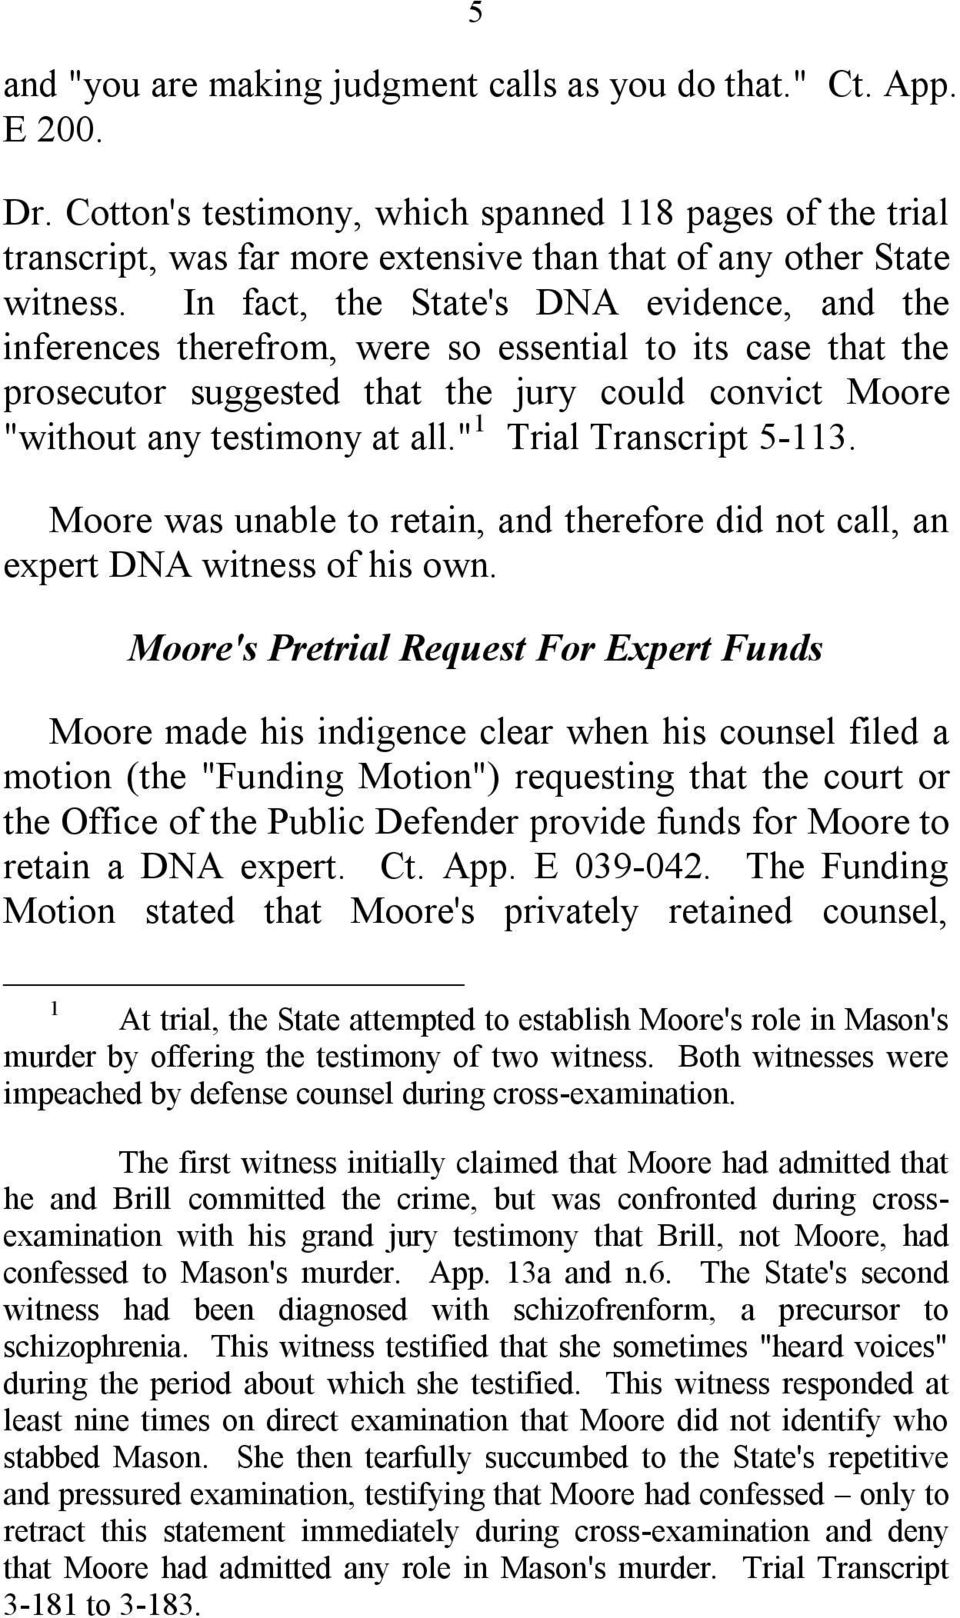 "In fact, the State's DNA evidence, and the inferences therefrom, were so essential to its case that the prosecutor suggested that the jury could convict Moore ""without any testimony at all."